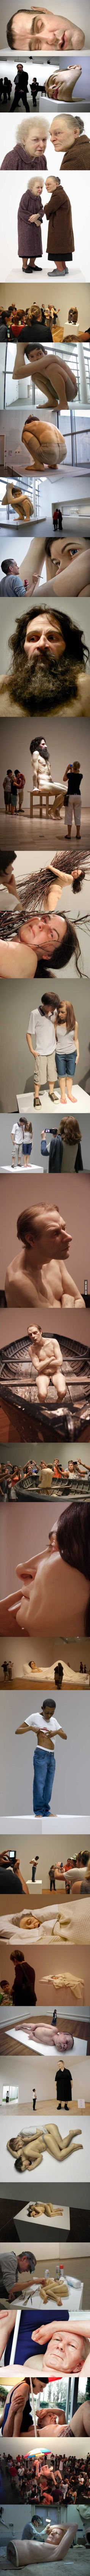 A Collection Of Ron Mueck's Realistic Sculptures